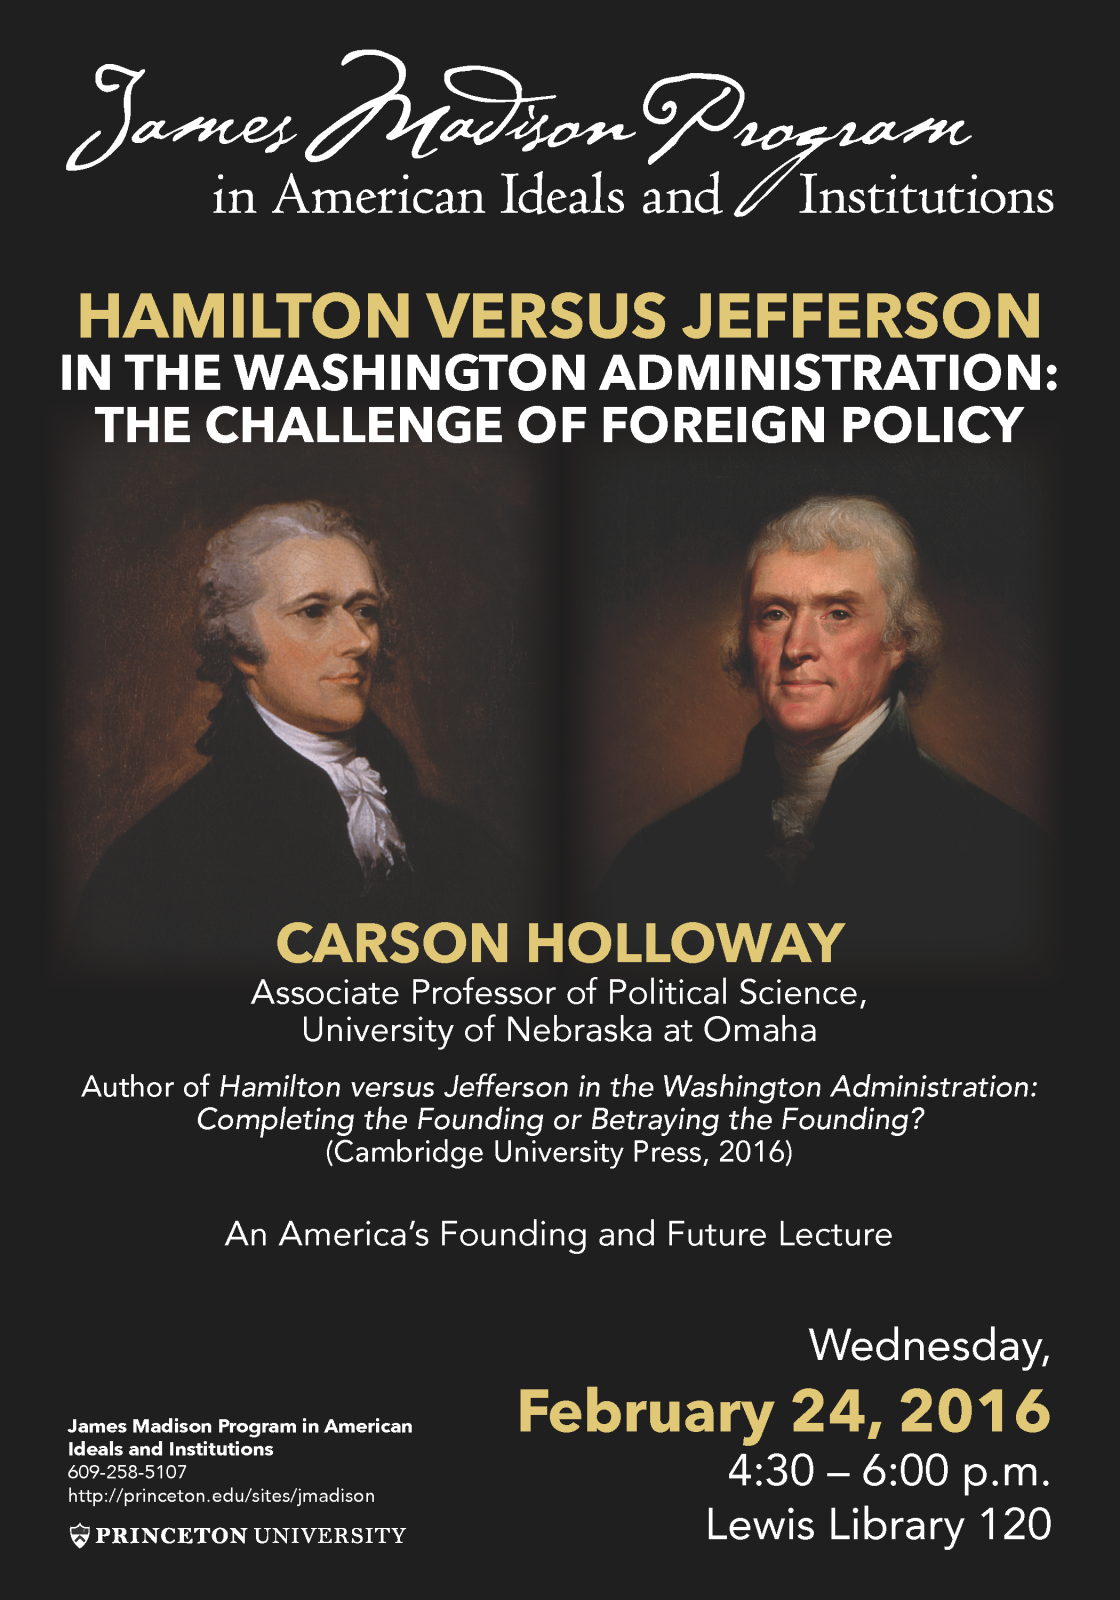 a comparison between thomas jefferson and alexander hamilton on the development of america Who's america will it become: hamilton vs jefferson it is not an easy exercise, to look back nearly 250 years into american history and imagine what life was like during this period, the economy of the colonies was almost completely reliant on the parent economies of london and other major european trading partner cities mostly the.